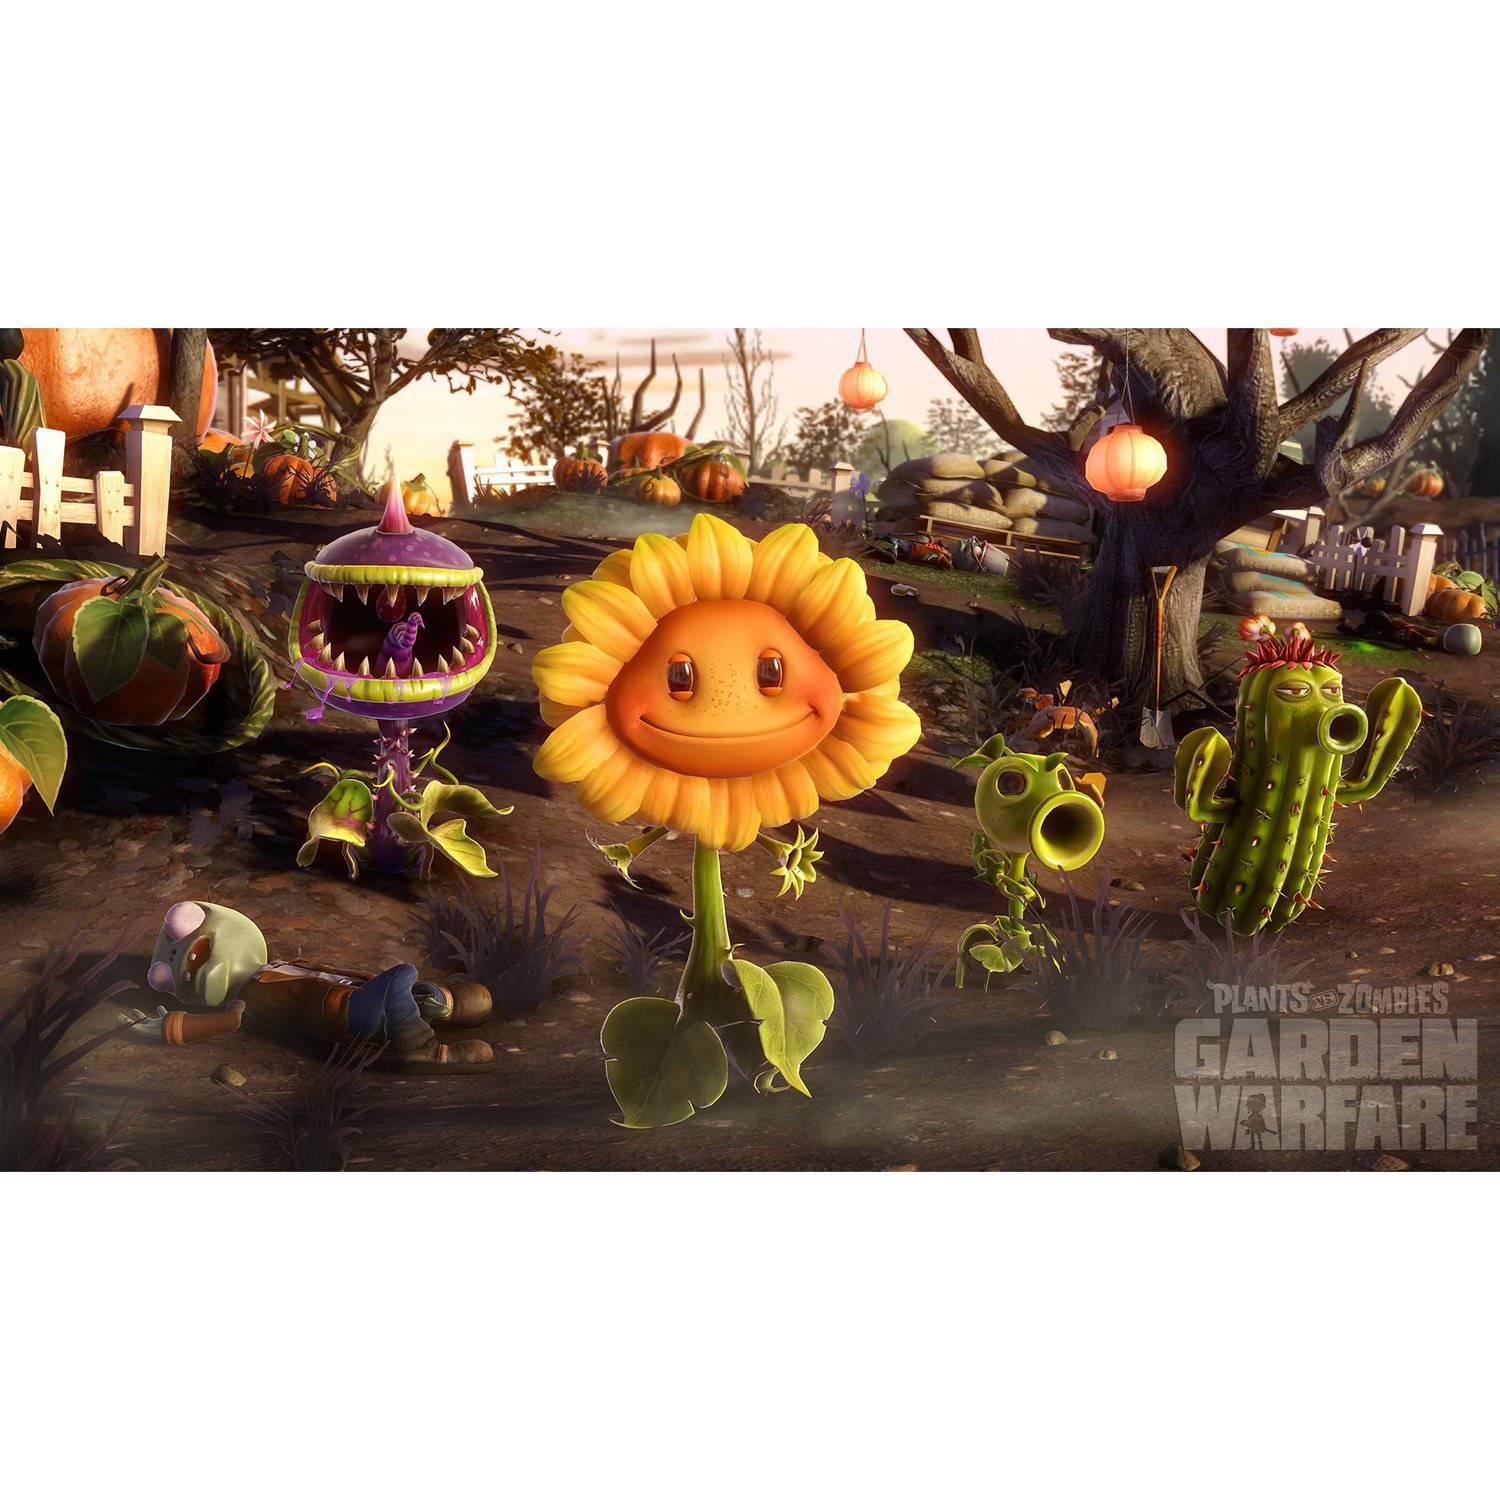 Plants Vs Zombies Garden Warfare - Walmart.com